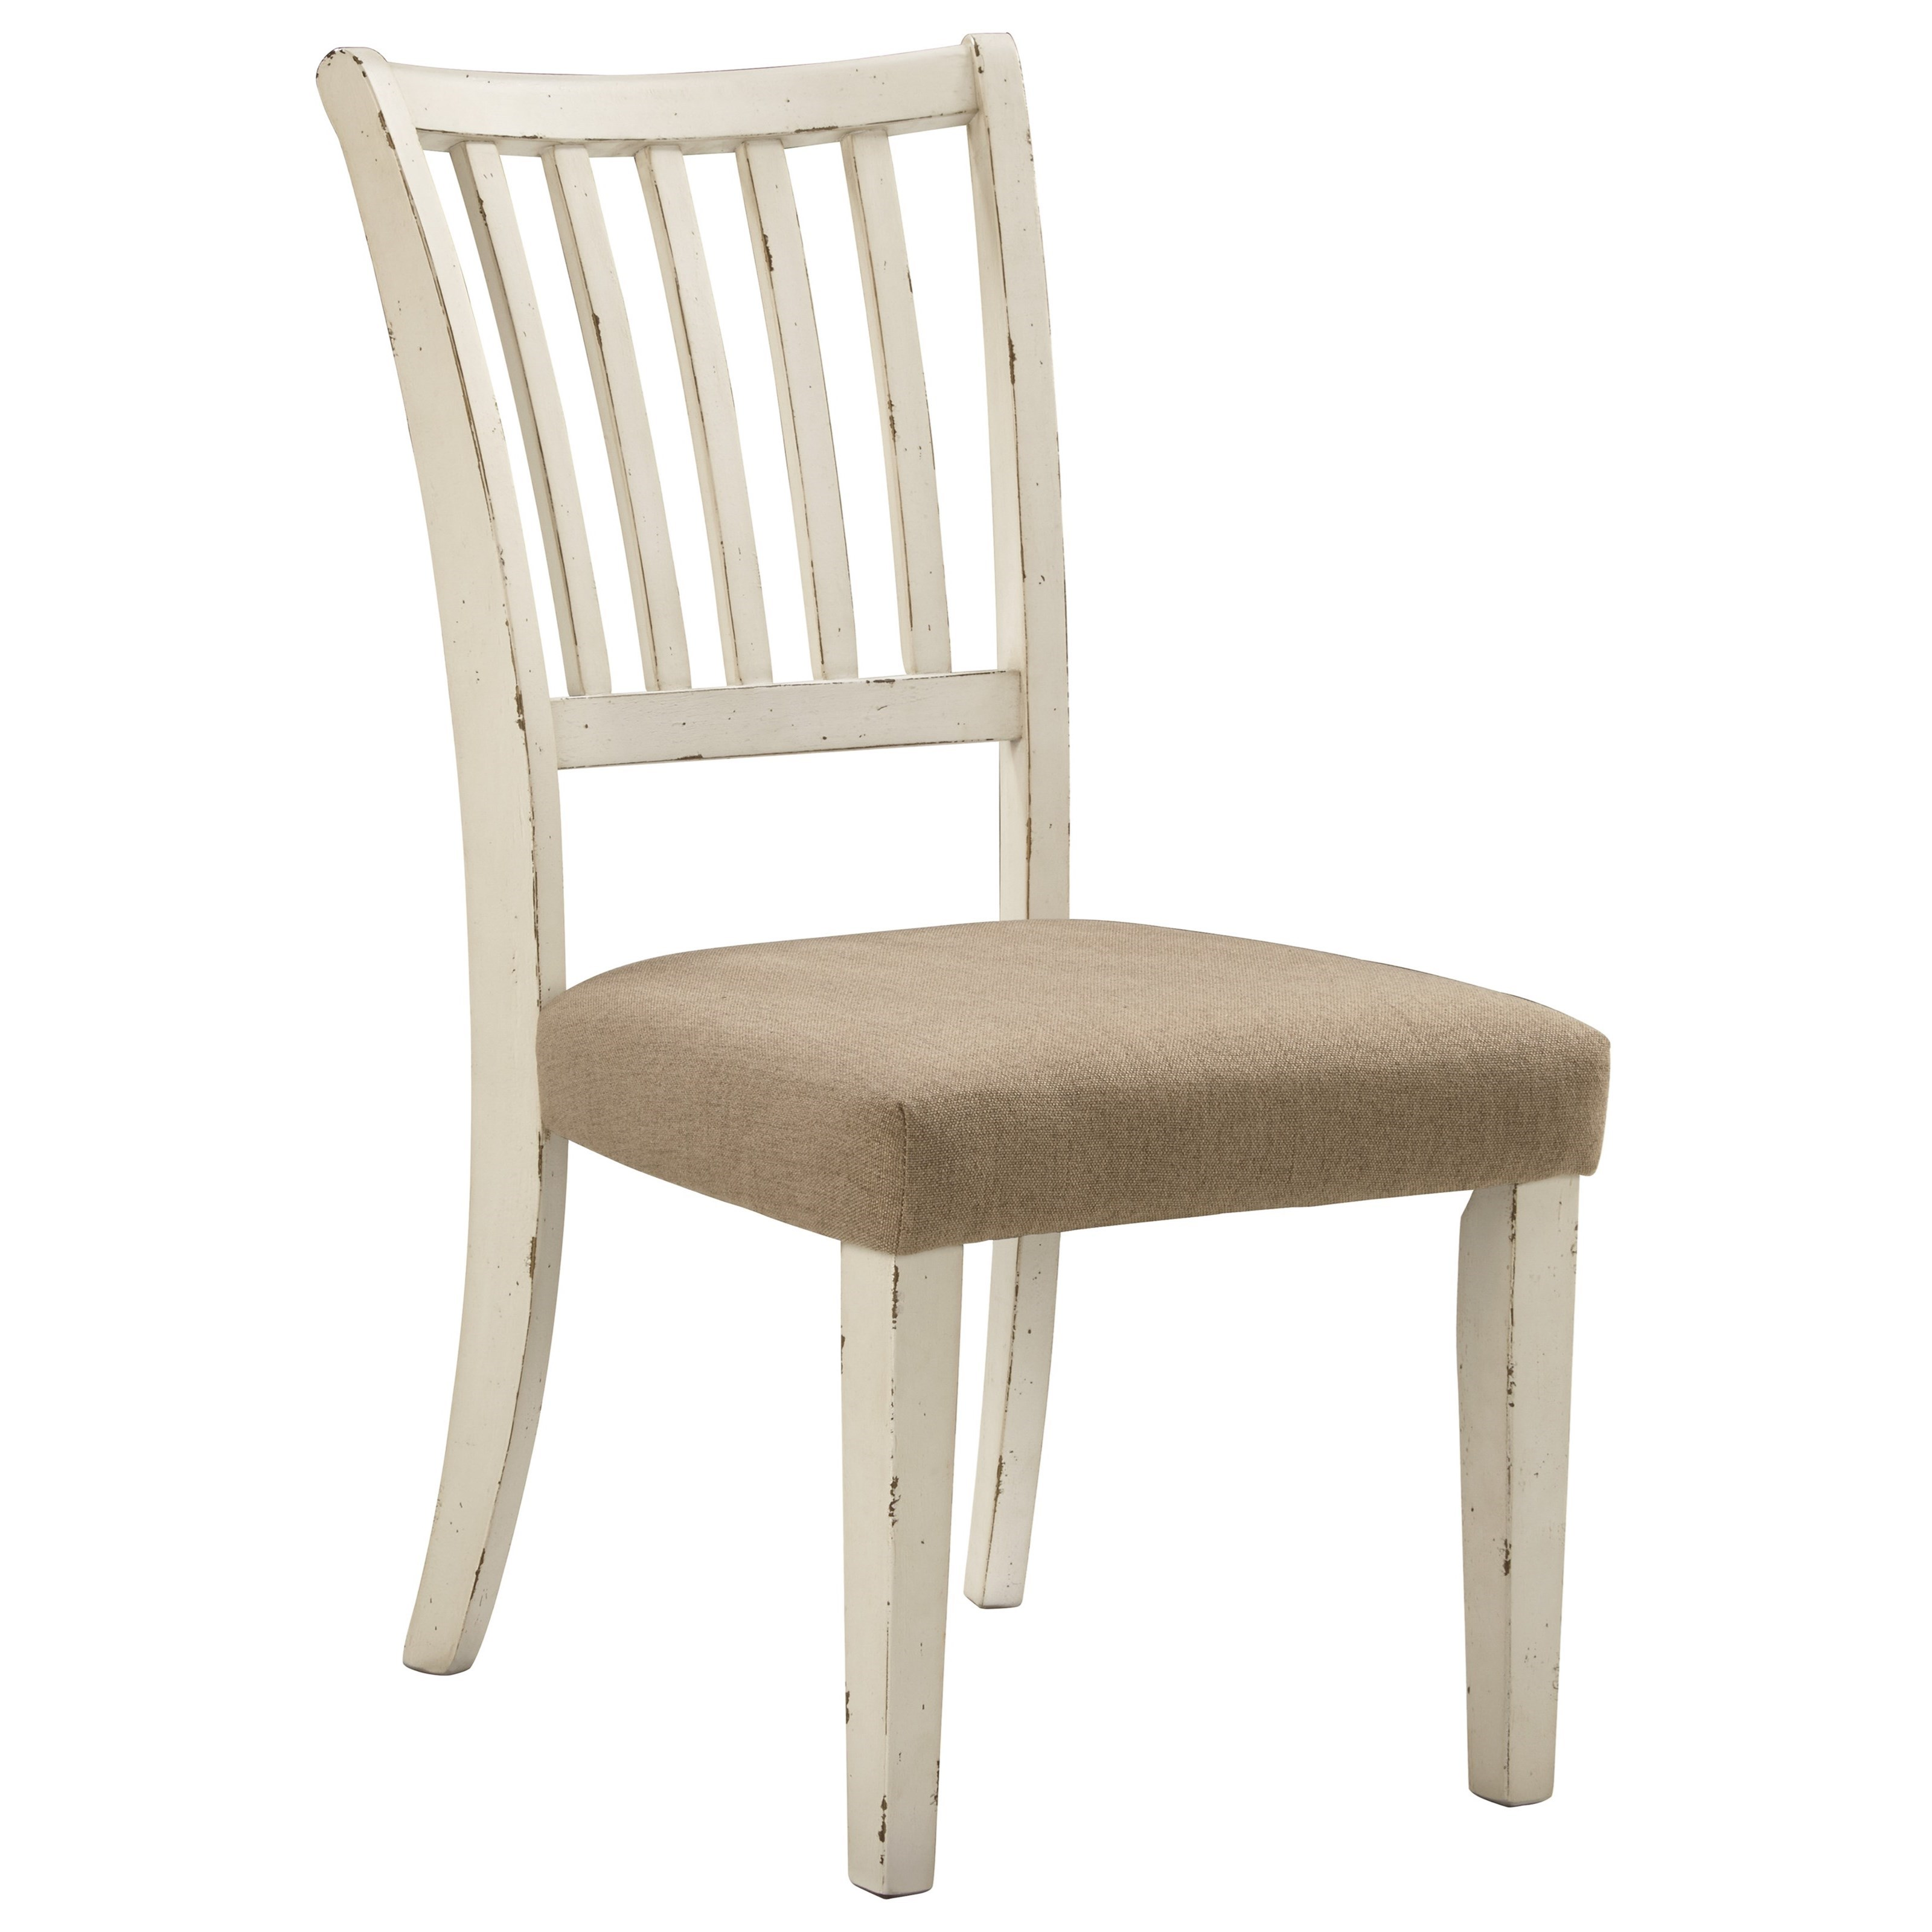 Dazzelston Dining Side Chair With Slat Backrest By Signature Design Ashley